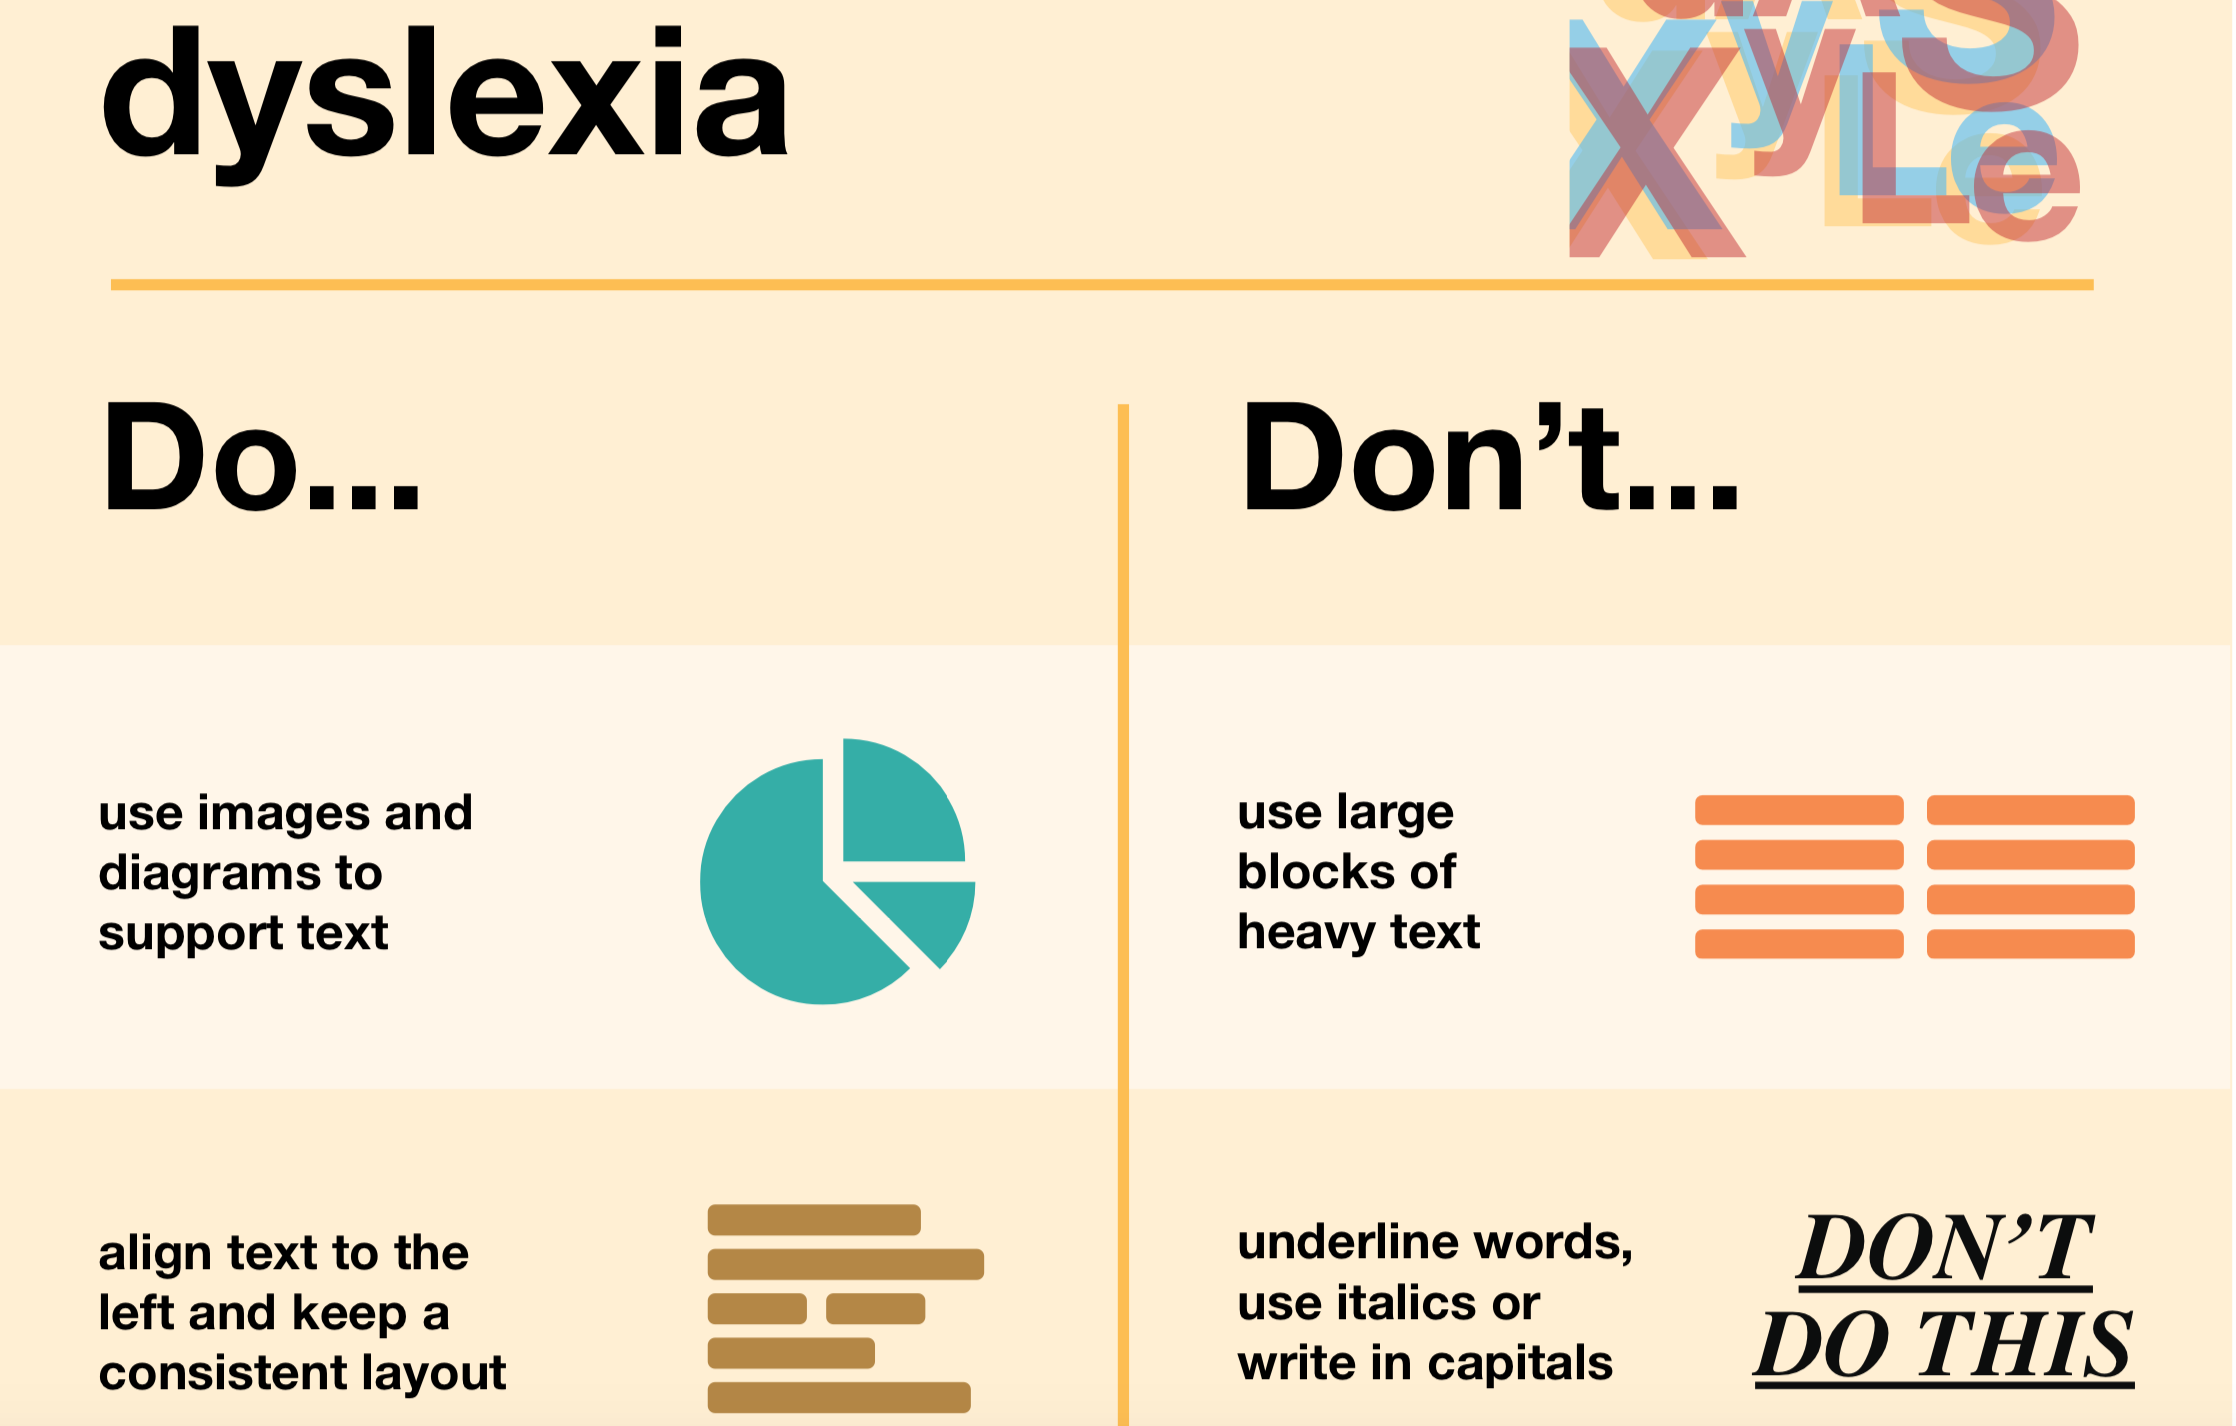 dyslexia accessibility do's and don'ts